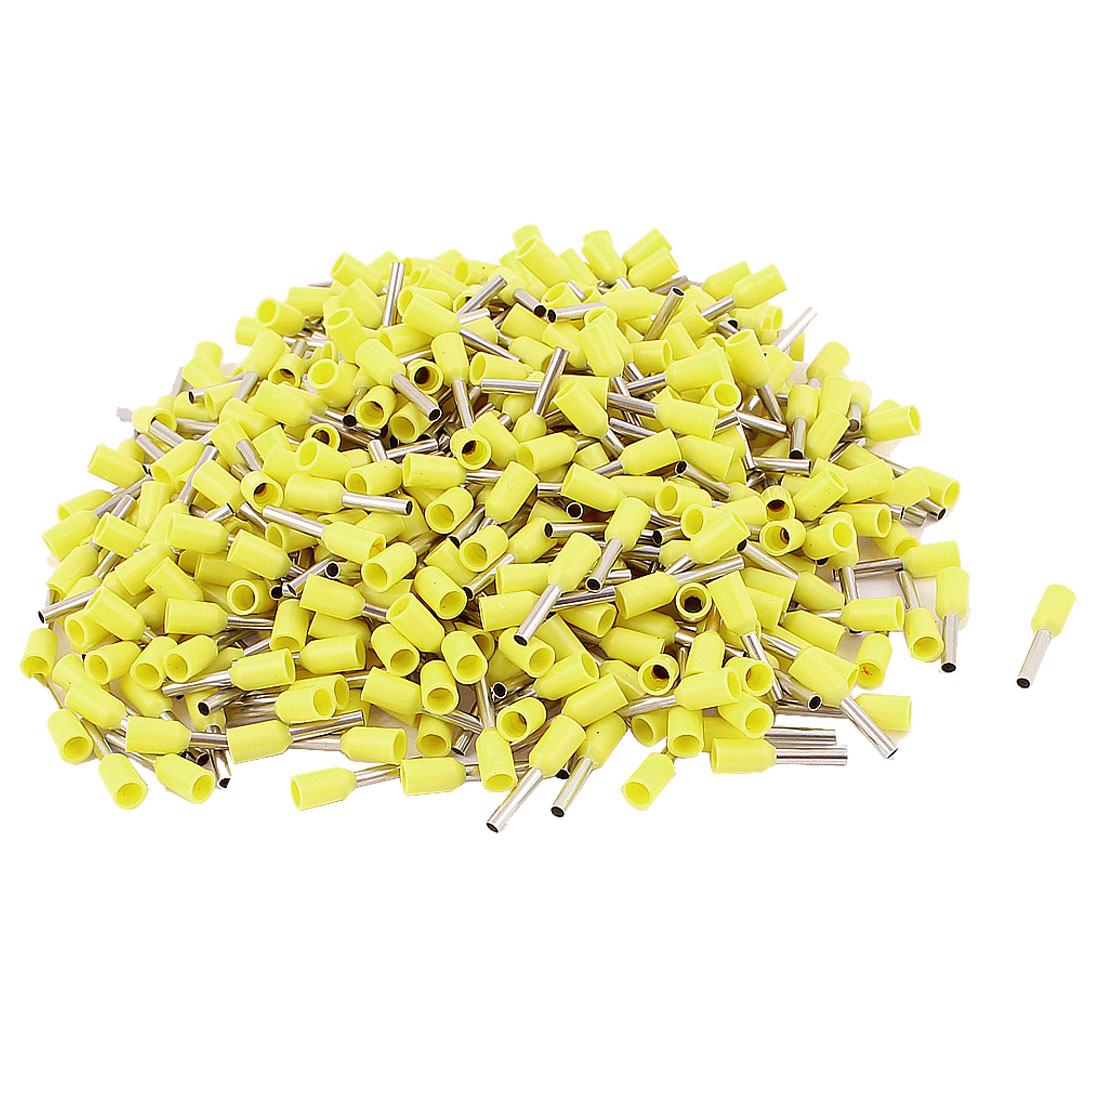 470pcs Wire Crimp Connector Pin End Insulated Terminal Yellow for Cable AWG 18